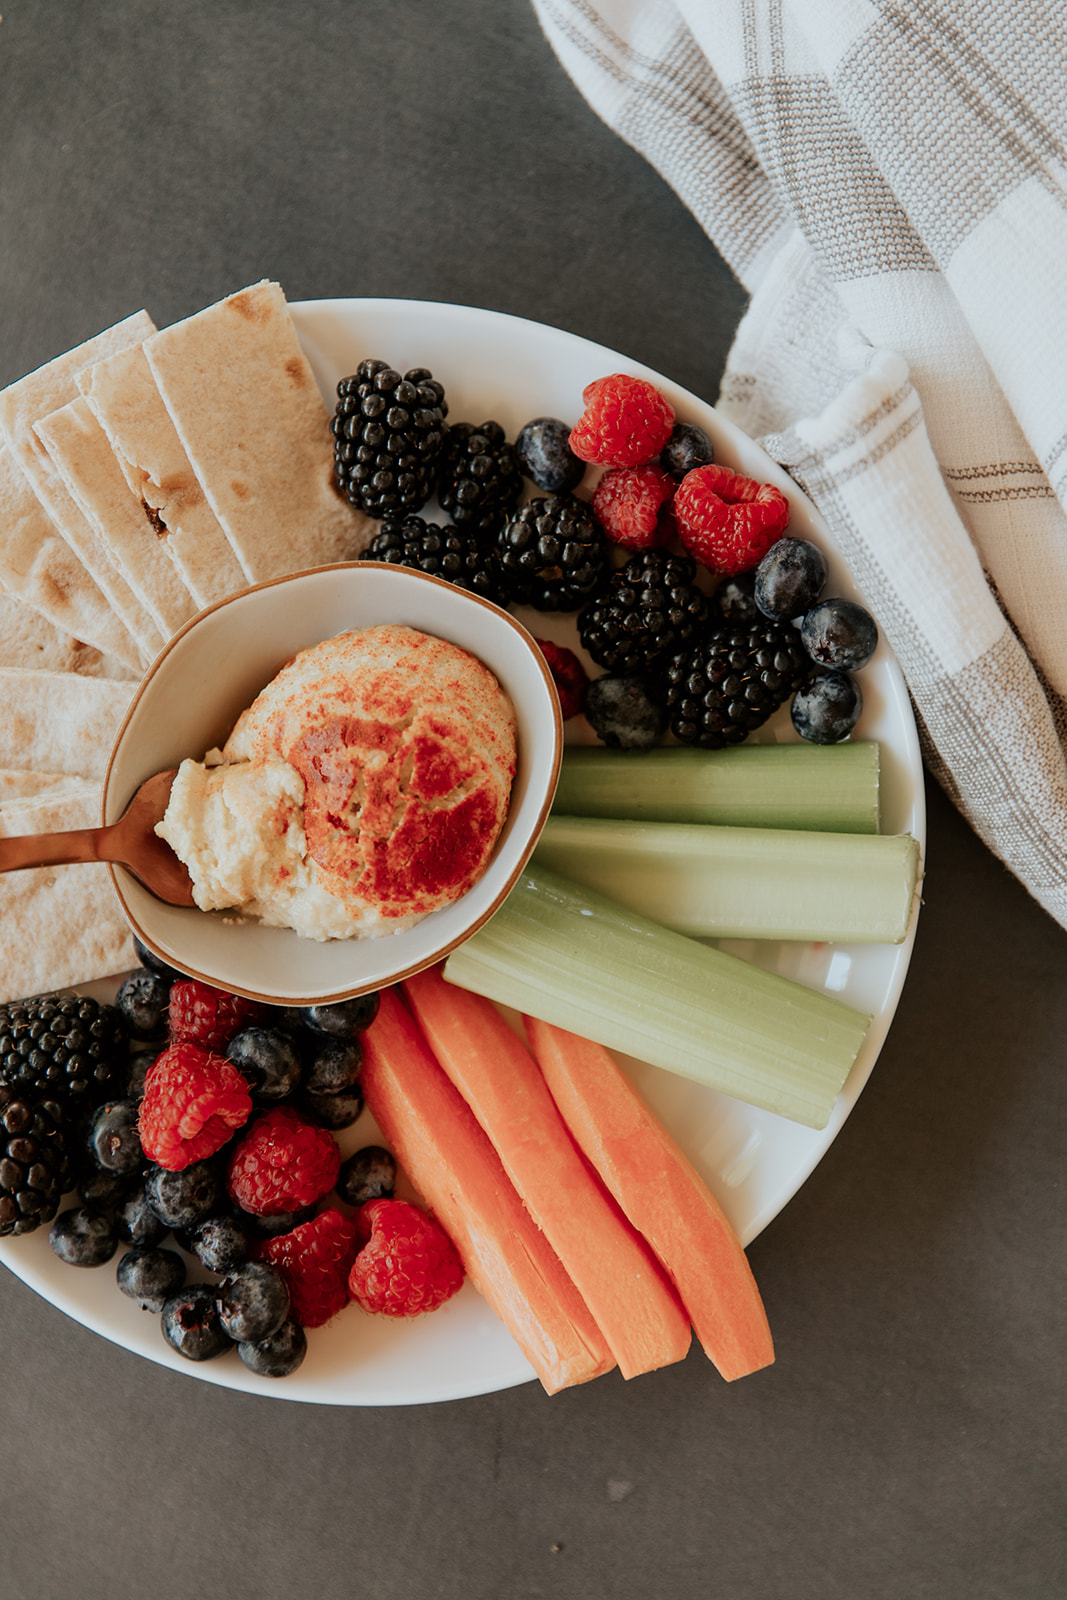 Hummus, veggies and berries on a plate.